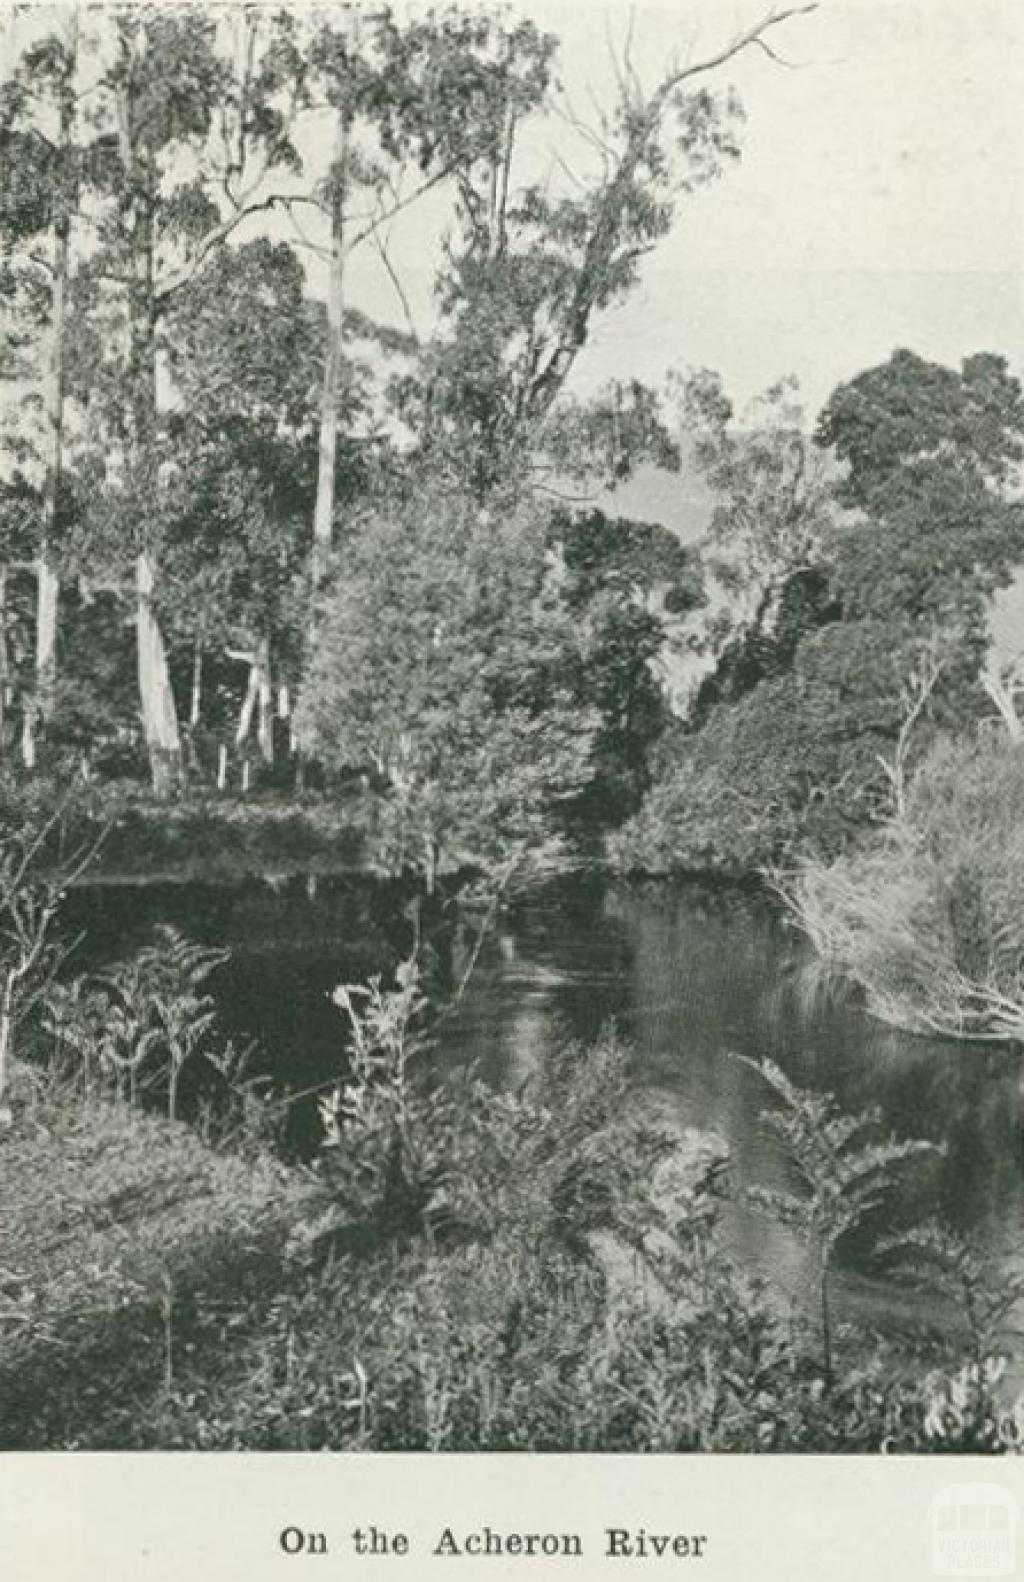 On the Acheron River, 1918